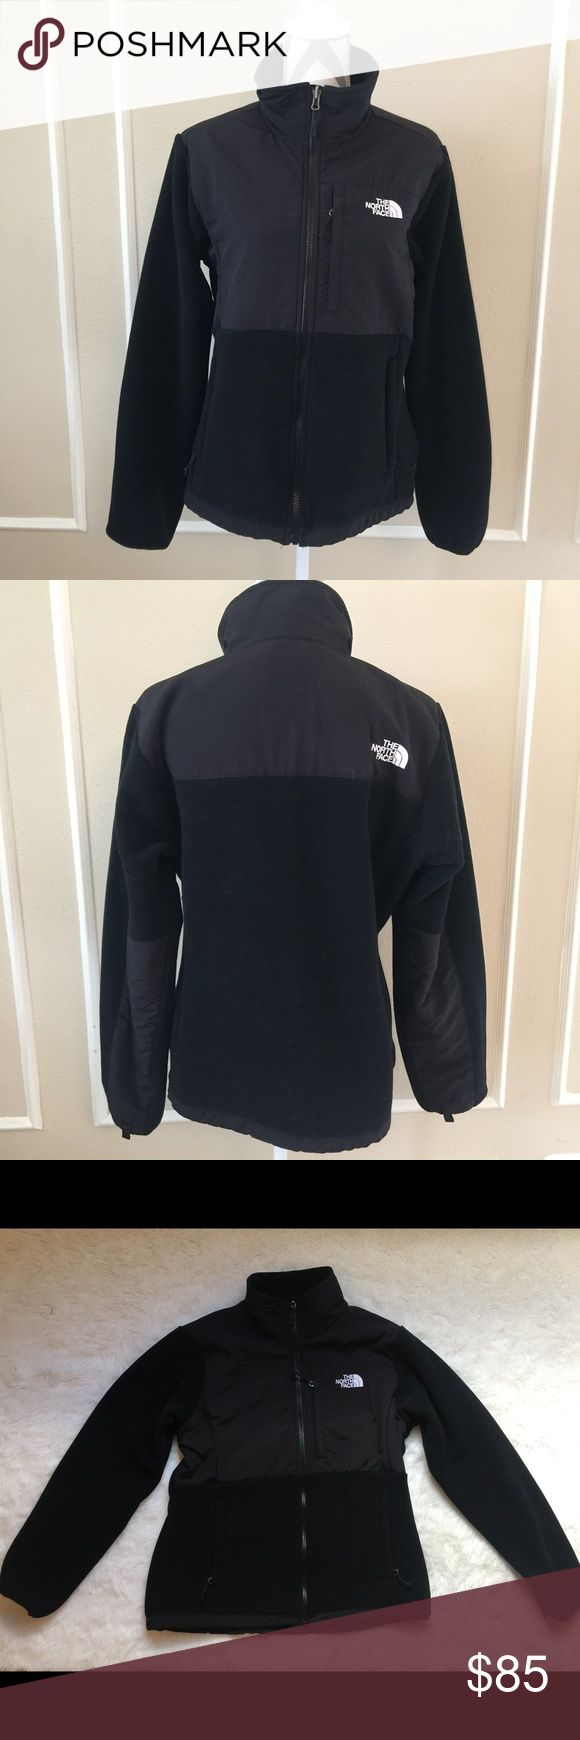 NWOT The North Face Black Denali Jacket Brand new, never worn,  Denali jacket by the North Face. Size M. I bought it and never wore it. I have the same jacket which is used and no tags also up for sale if you are interested for $50 The North Face Jackets & Coats